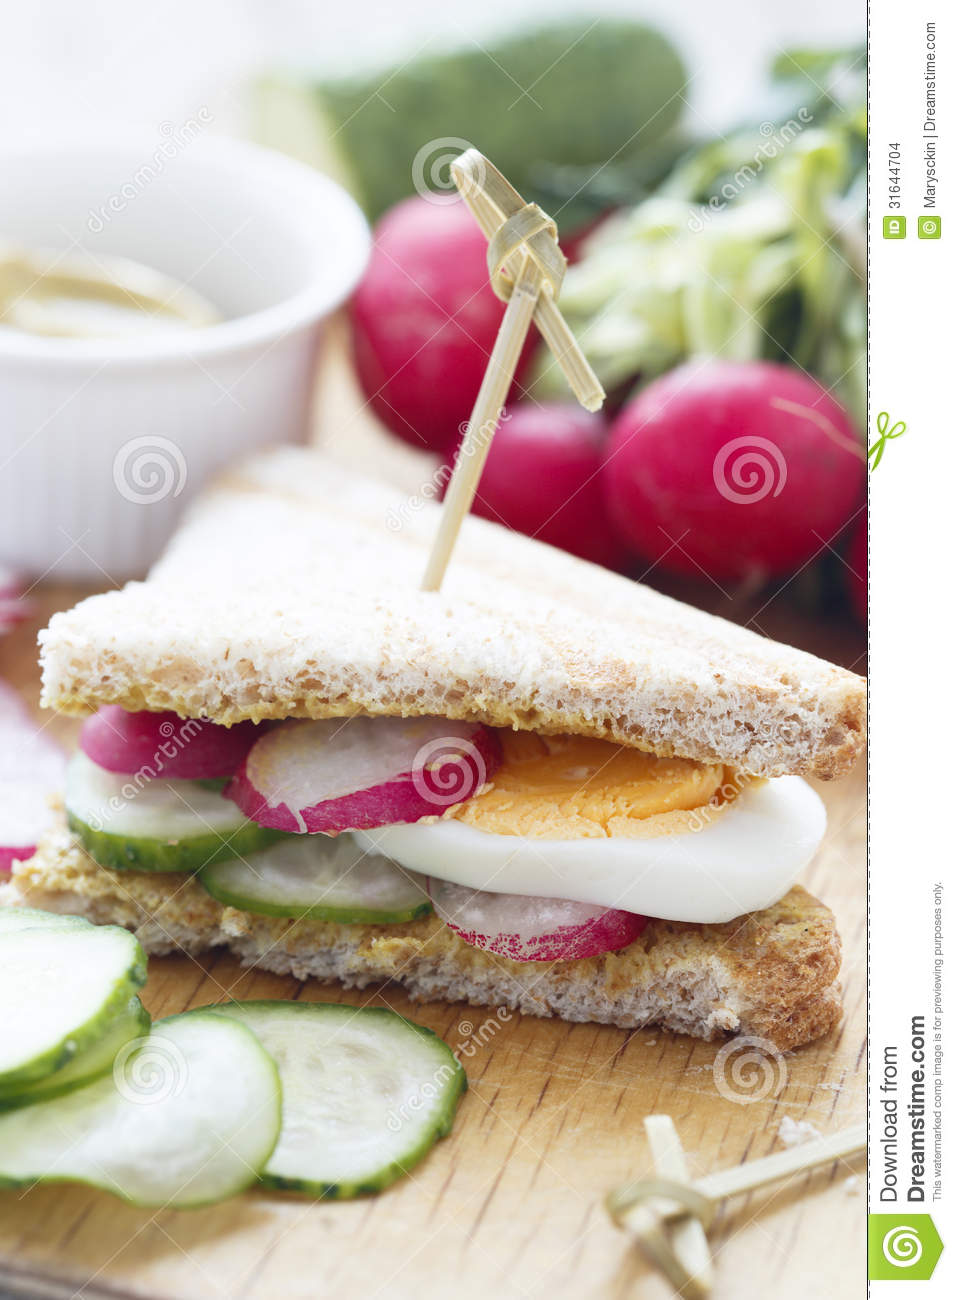 Radish And Cucumber Sandwich Stock Images - Image: 31644704